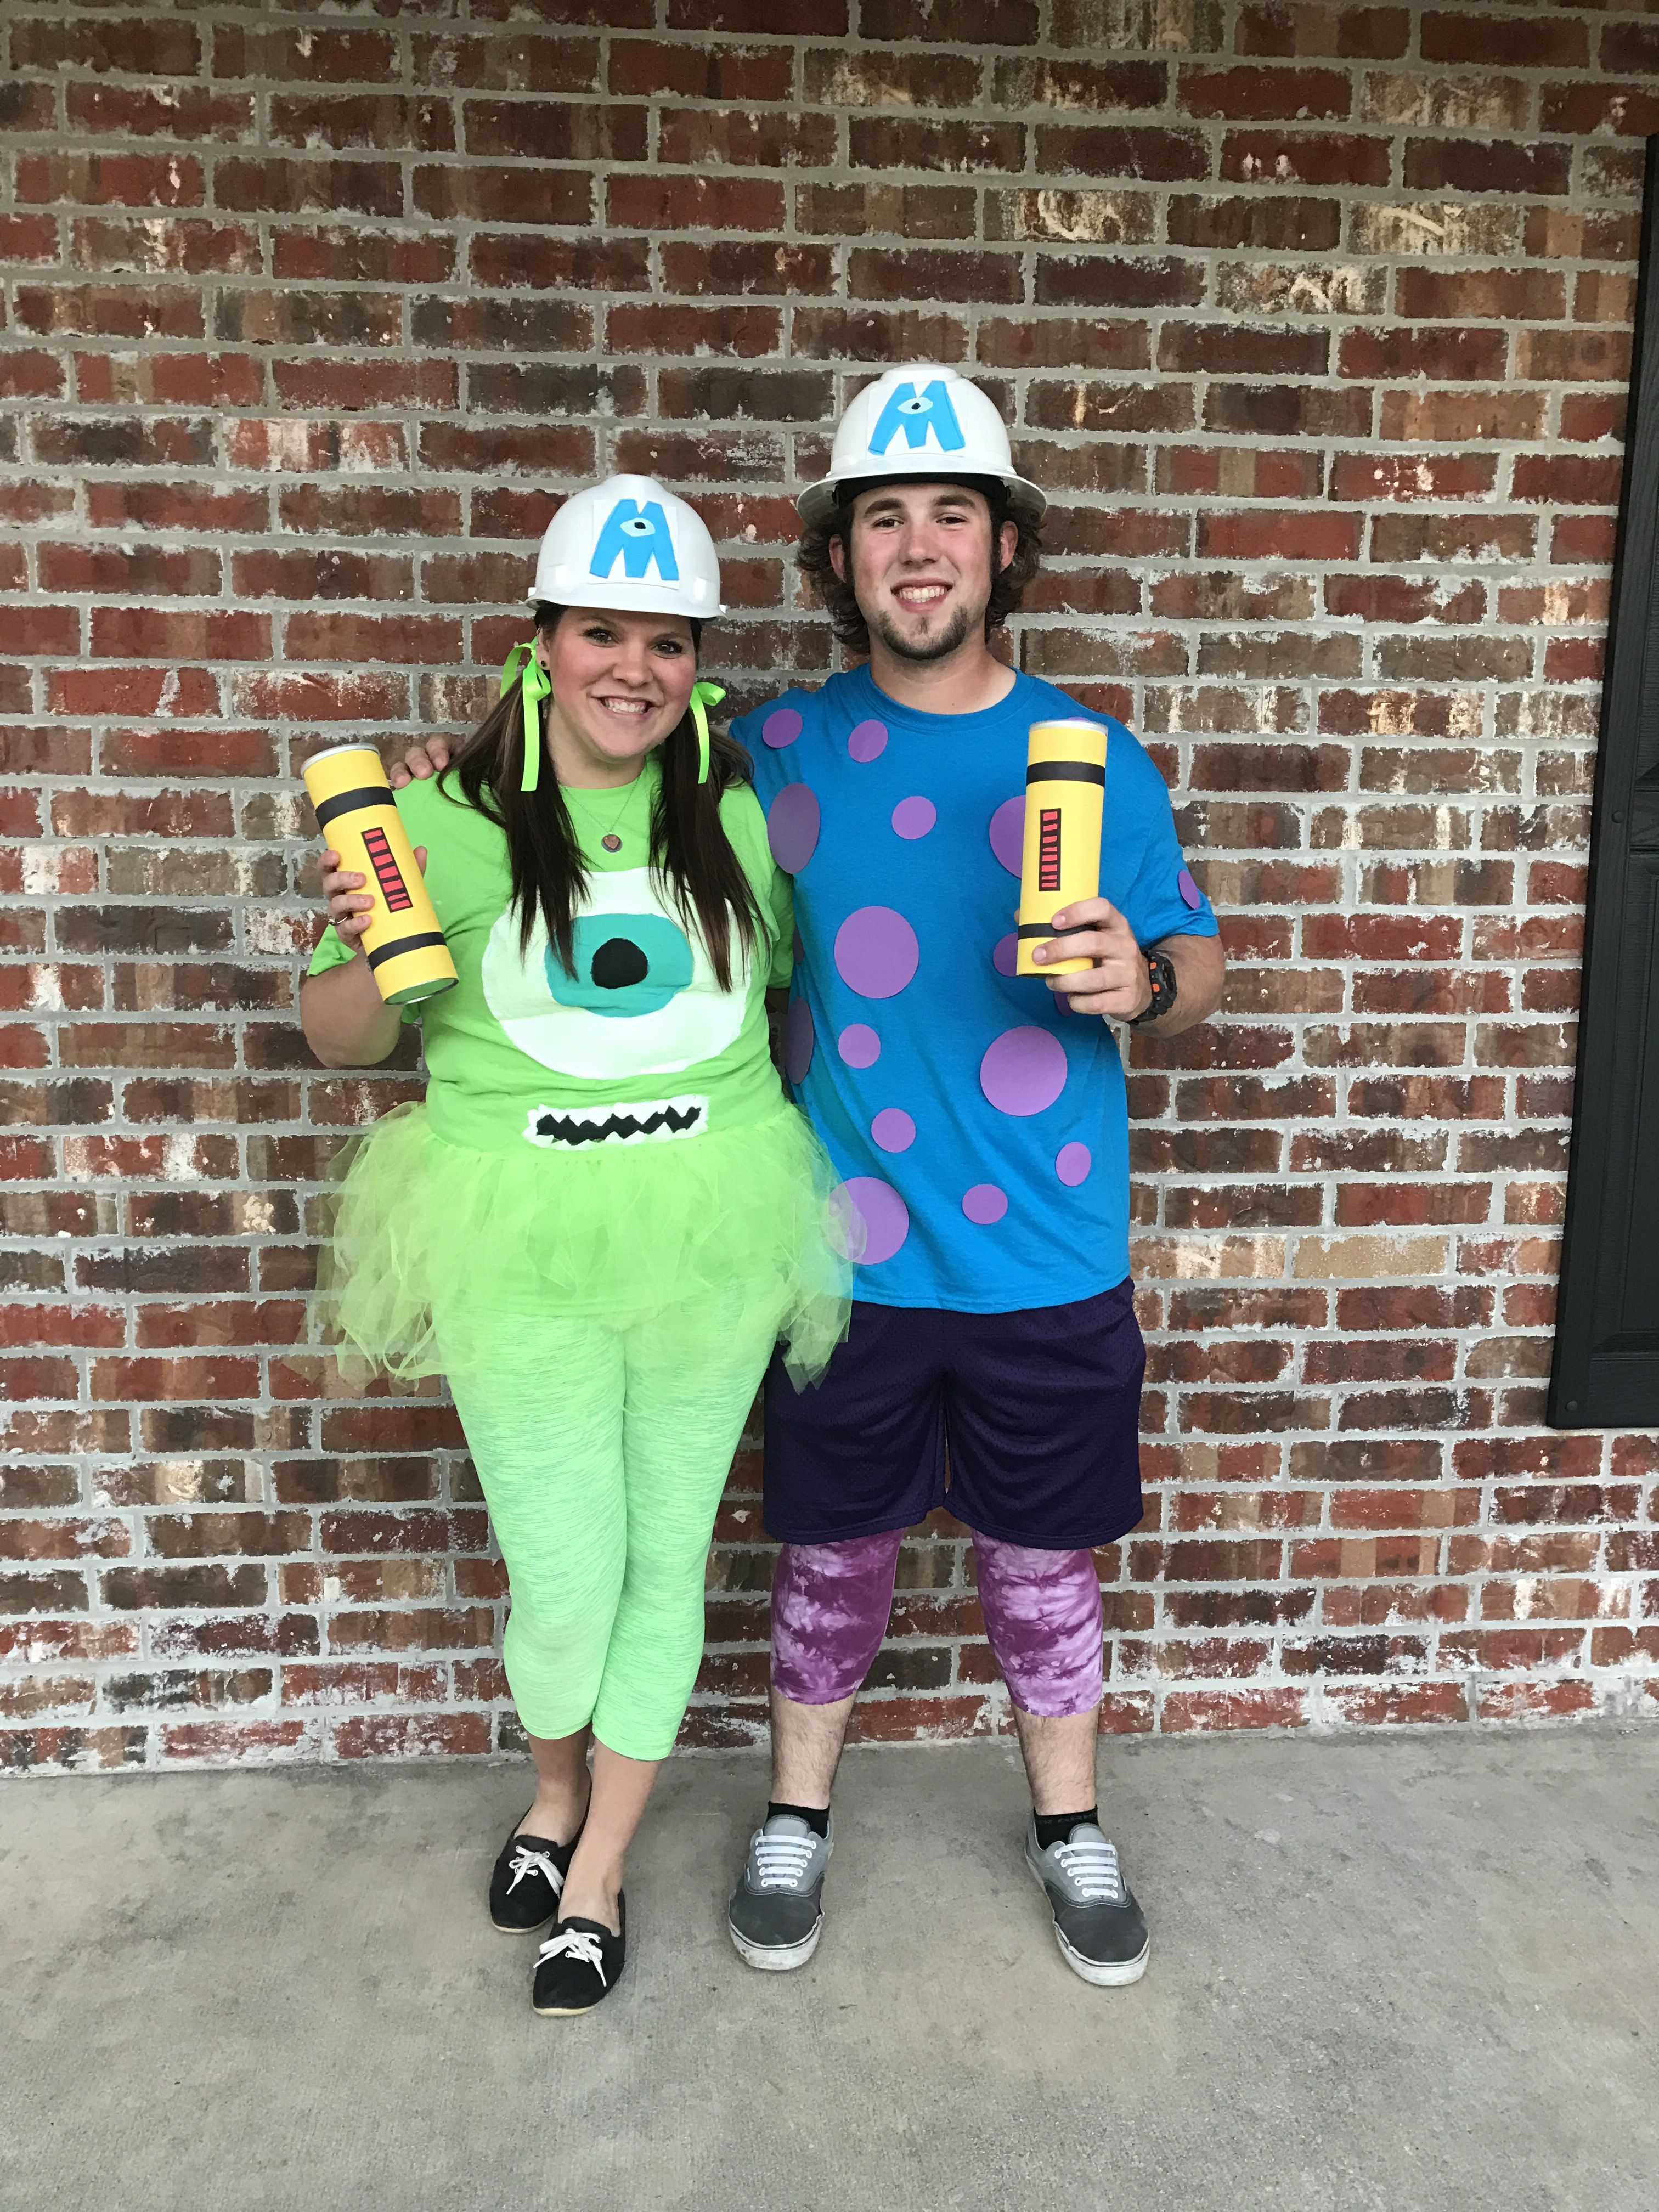 Mike And Sully Halloween Costume Diy Monsters Inc Halloween Easy Sully Costume Diy Mike And Sully Costume Sully Costume